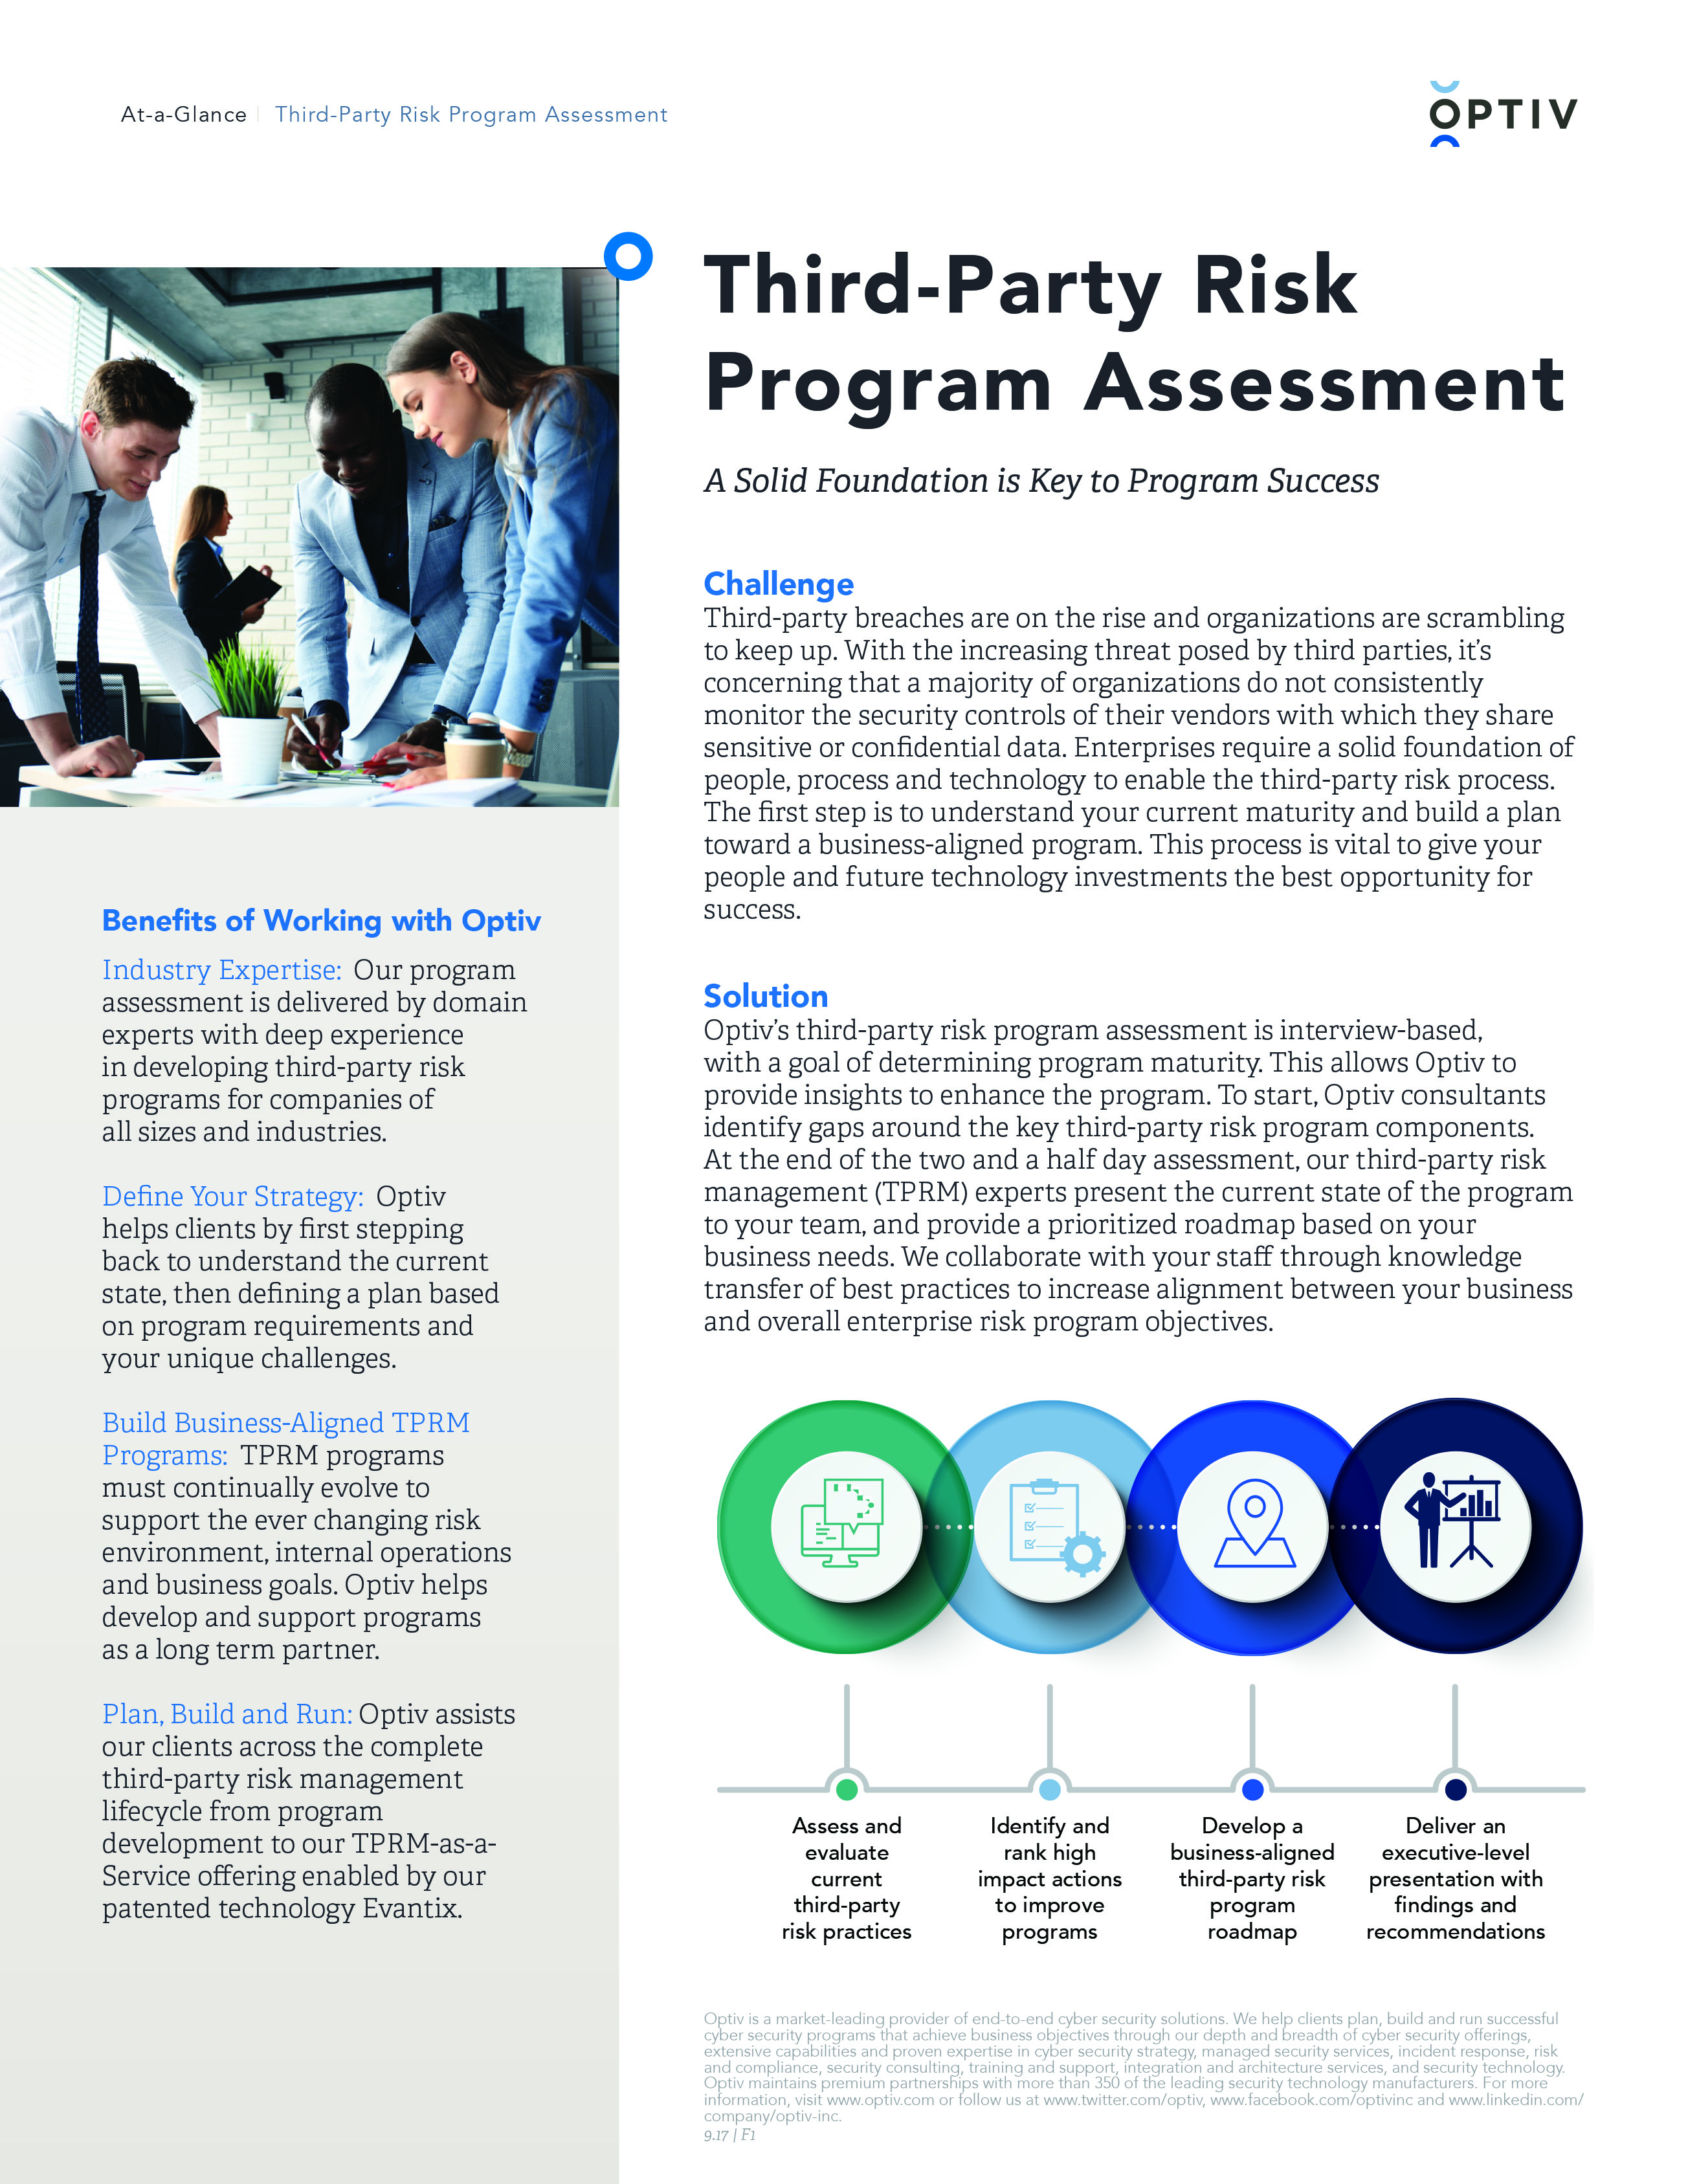 Third Party Risk Assessment At A Glance Brief